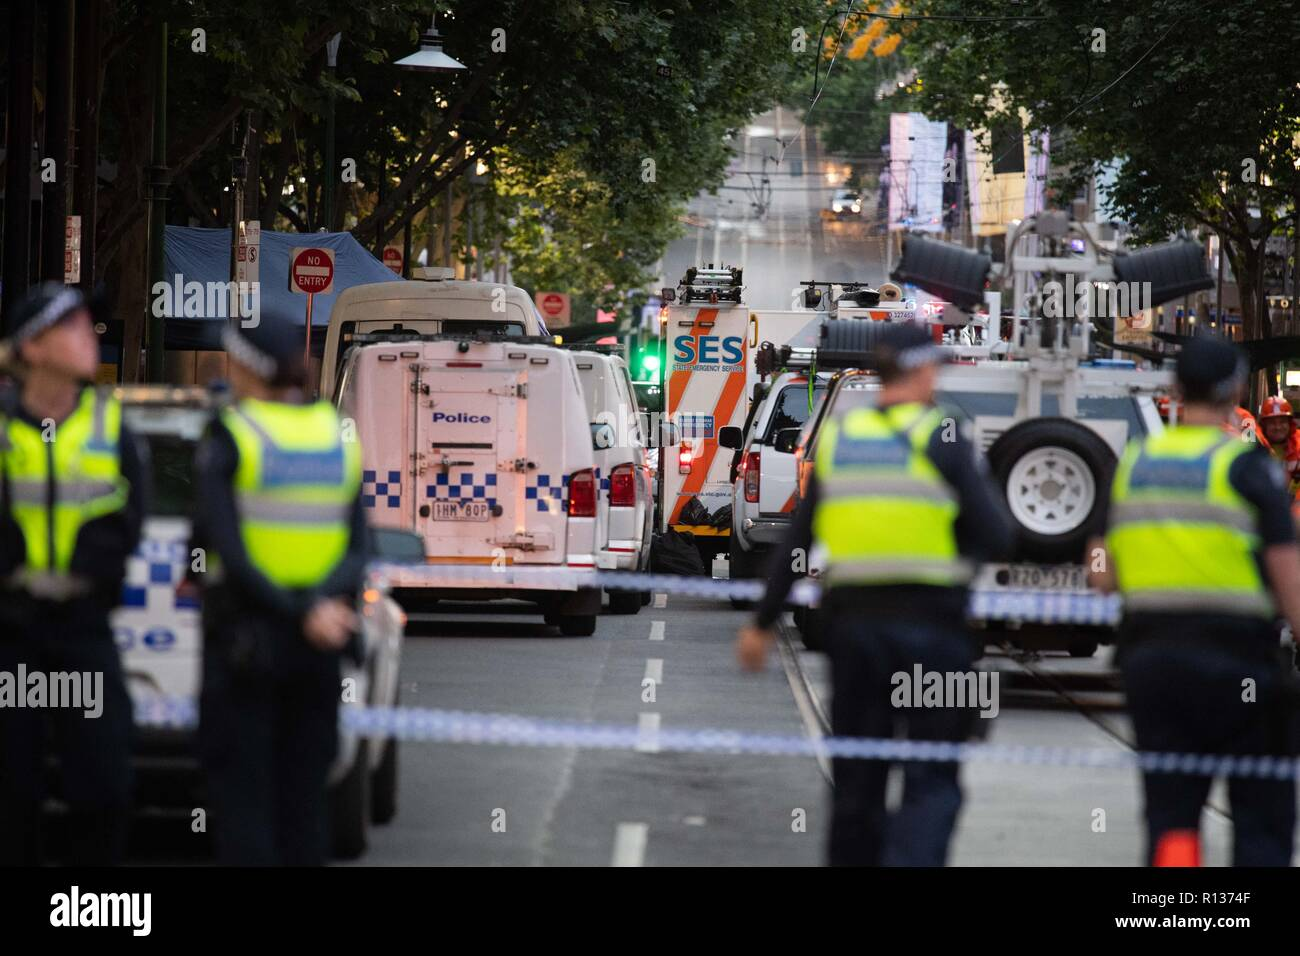 Melbourne, Australia. 9th Nov, 2018. Policemen guard at the site where a man attacked others in Melbourne, Australia, on Nov. 9, 2018. One person died from stab wounds and at least two others were treated for injuries in an attack in downtown of Australia's Victoria state capital Melbourne late Friday afternoon, according to police. Credit: Bai Xue/Xinhua/Alamy Live News - Stock Image